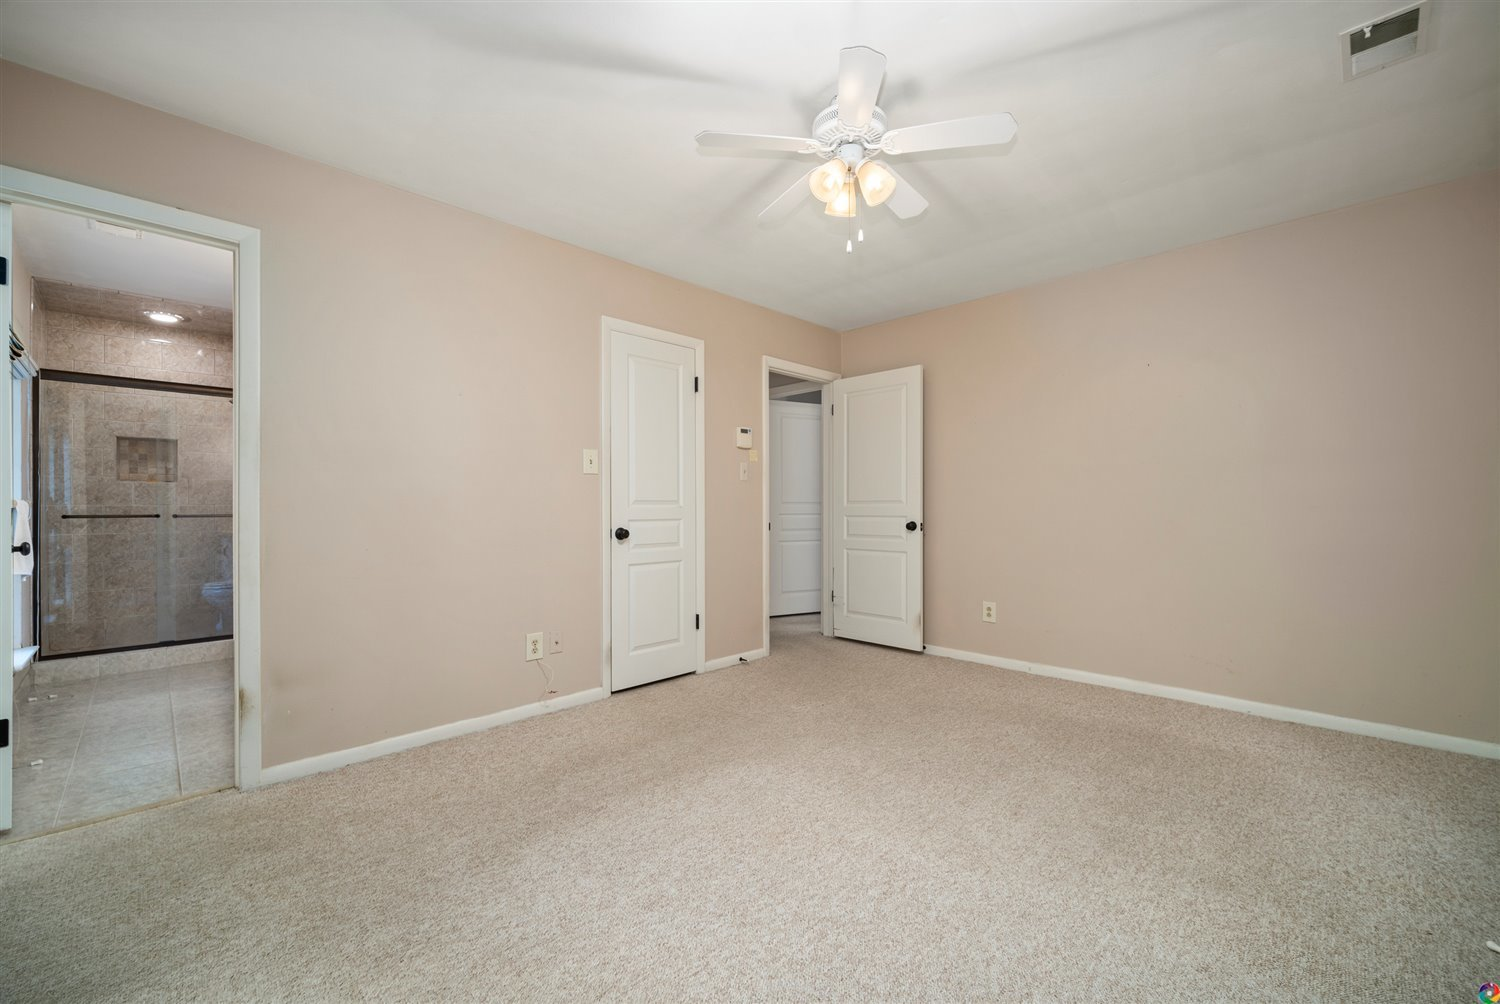 Image for 3 BR/2 BA Home in the Colonial Oaks Development Only 5 Miles from Oceanfront--Virginia Beach, VA